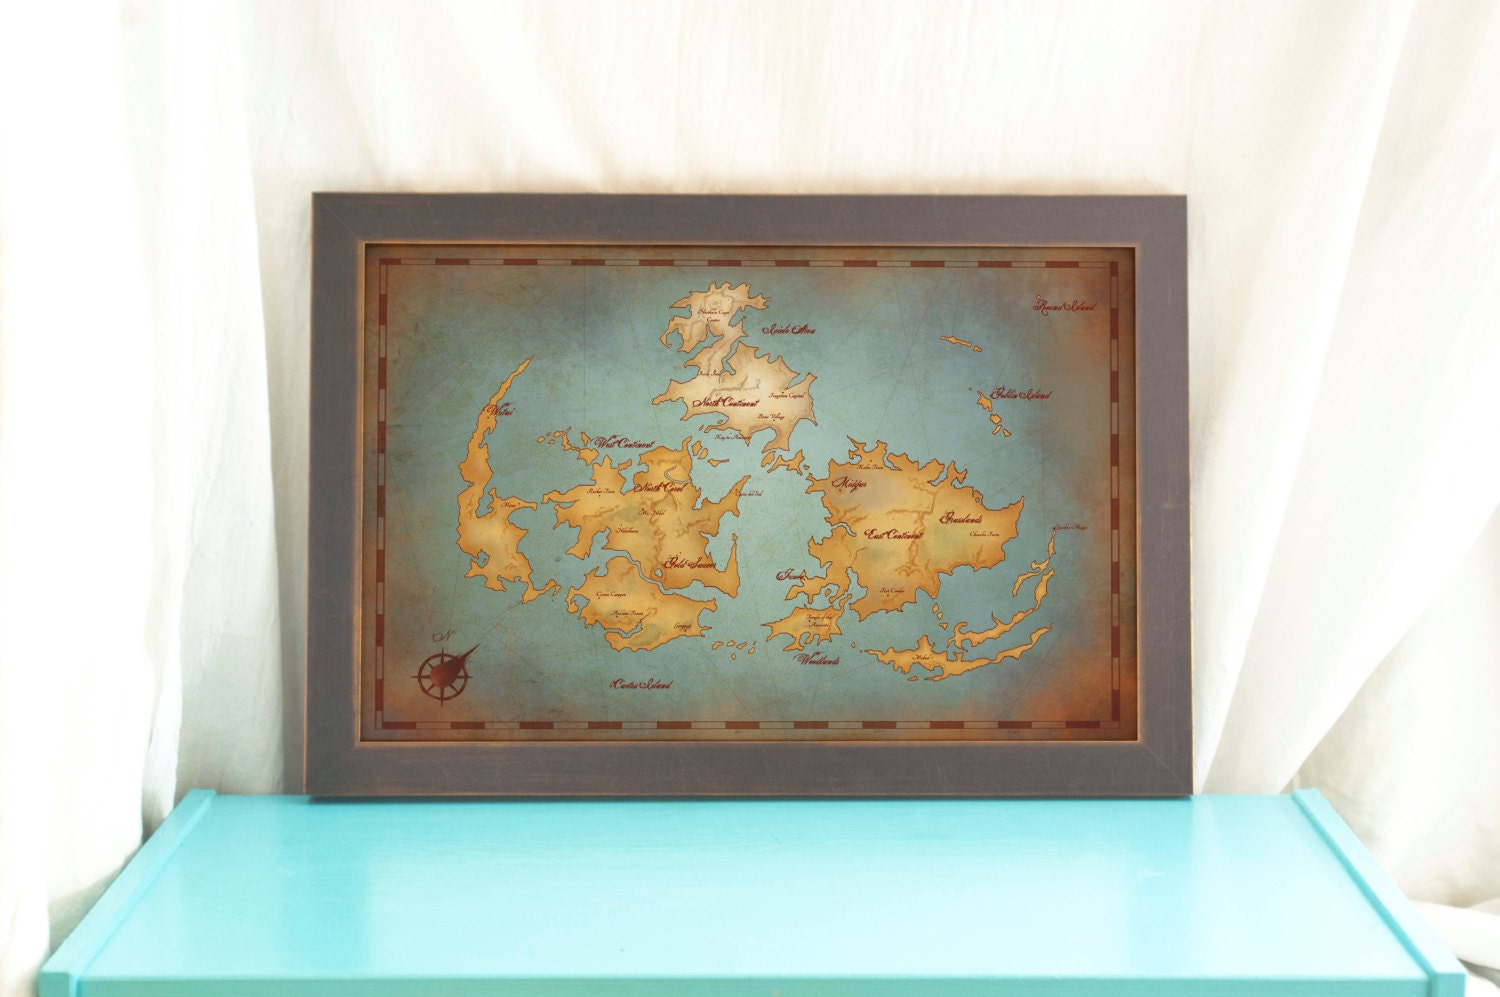 Final fantasy vii world map vintage style art print zoom gumiabroncs